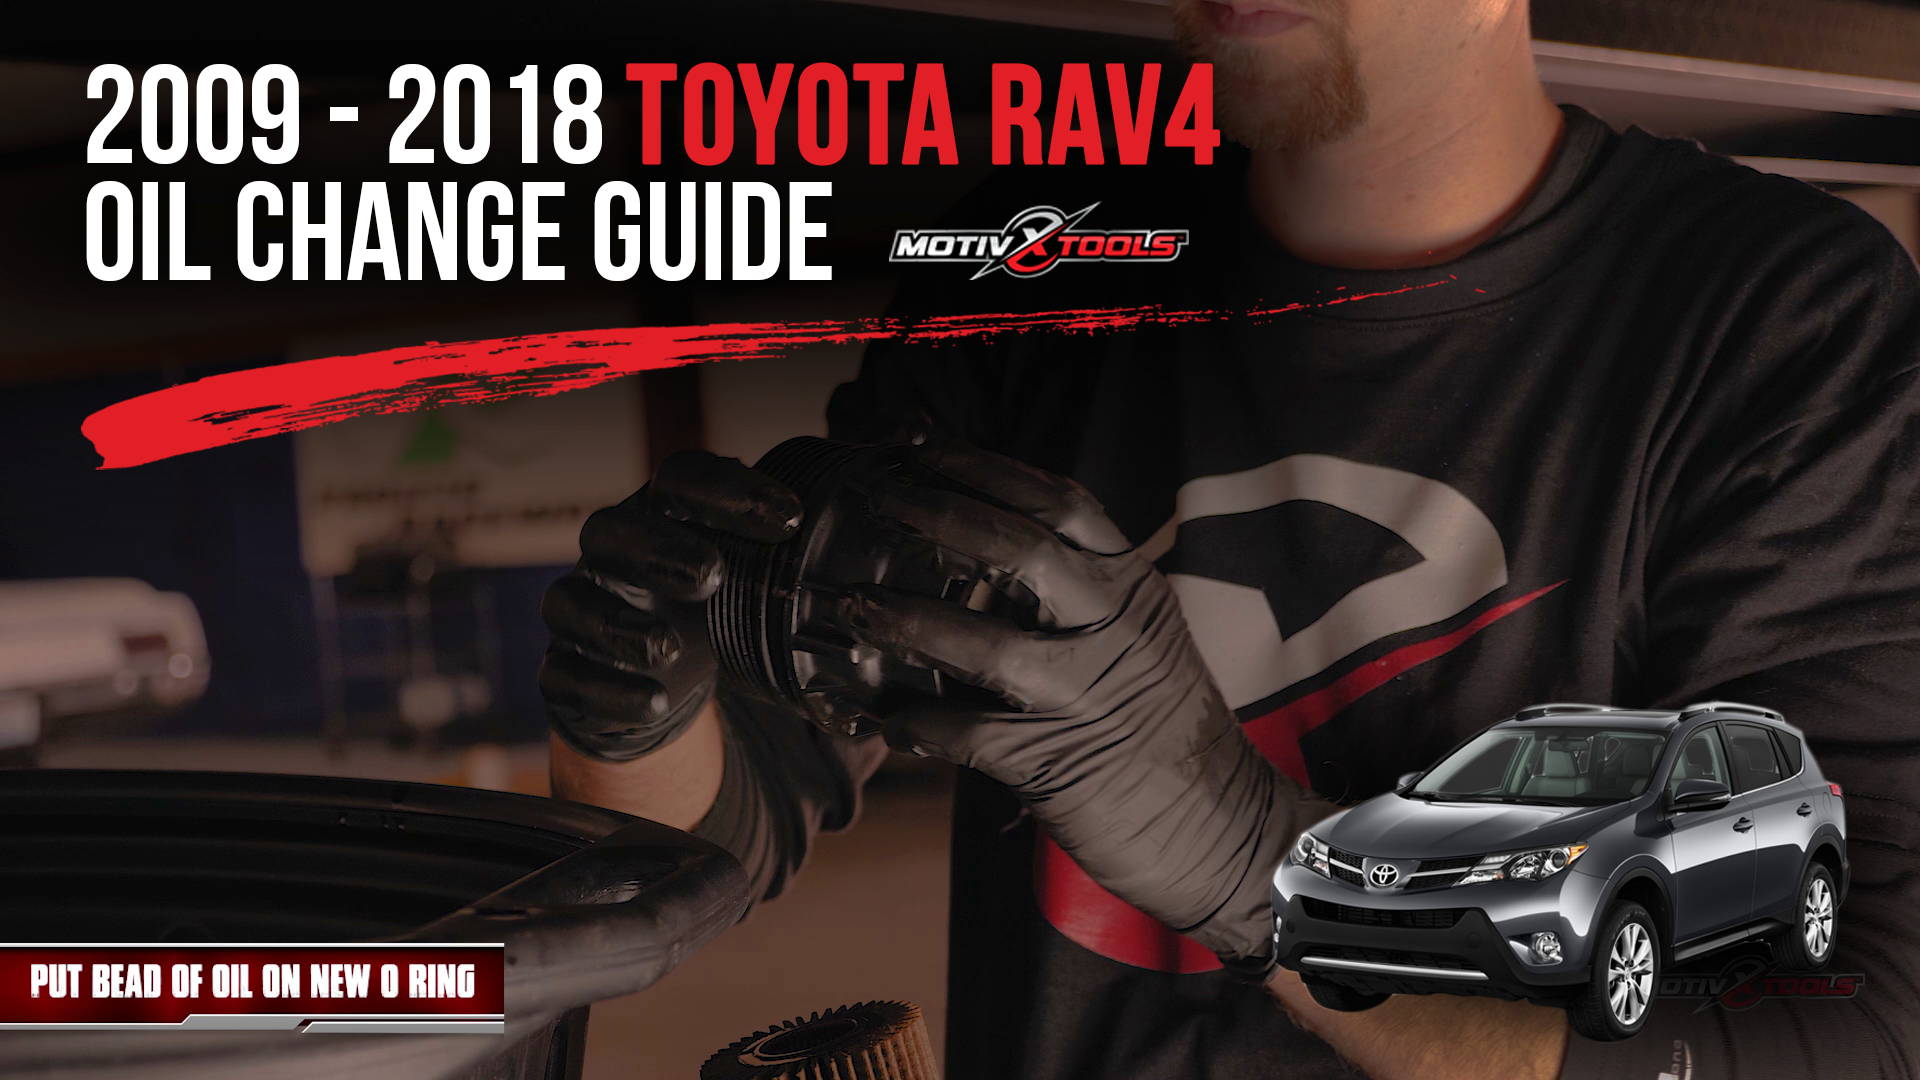 2009-2018 Toyota RAV4 Oil Change Guide - Motivx Tools